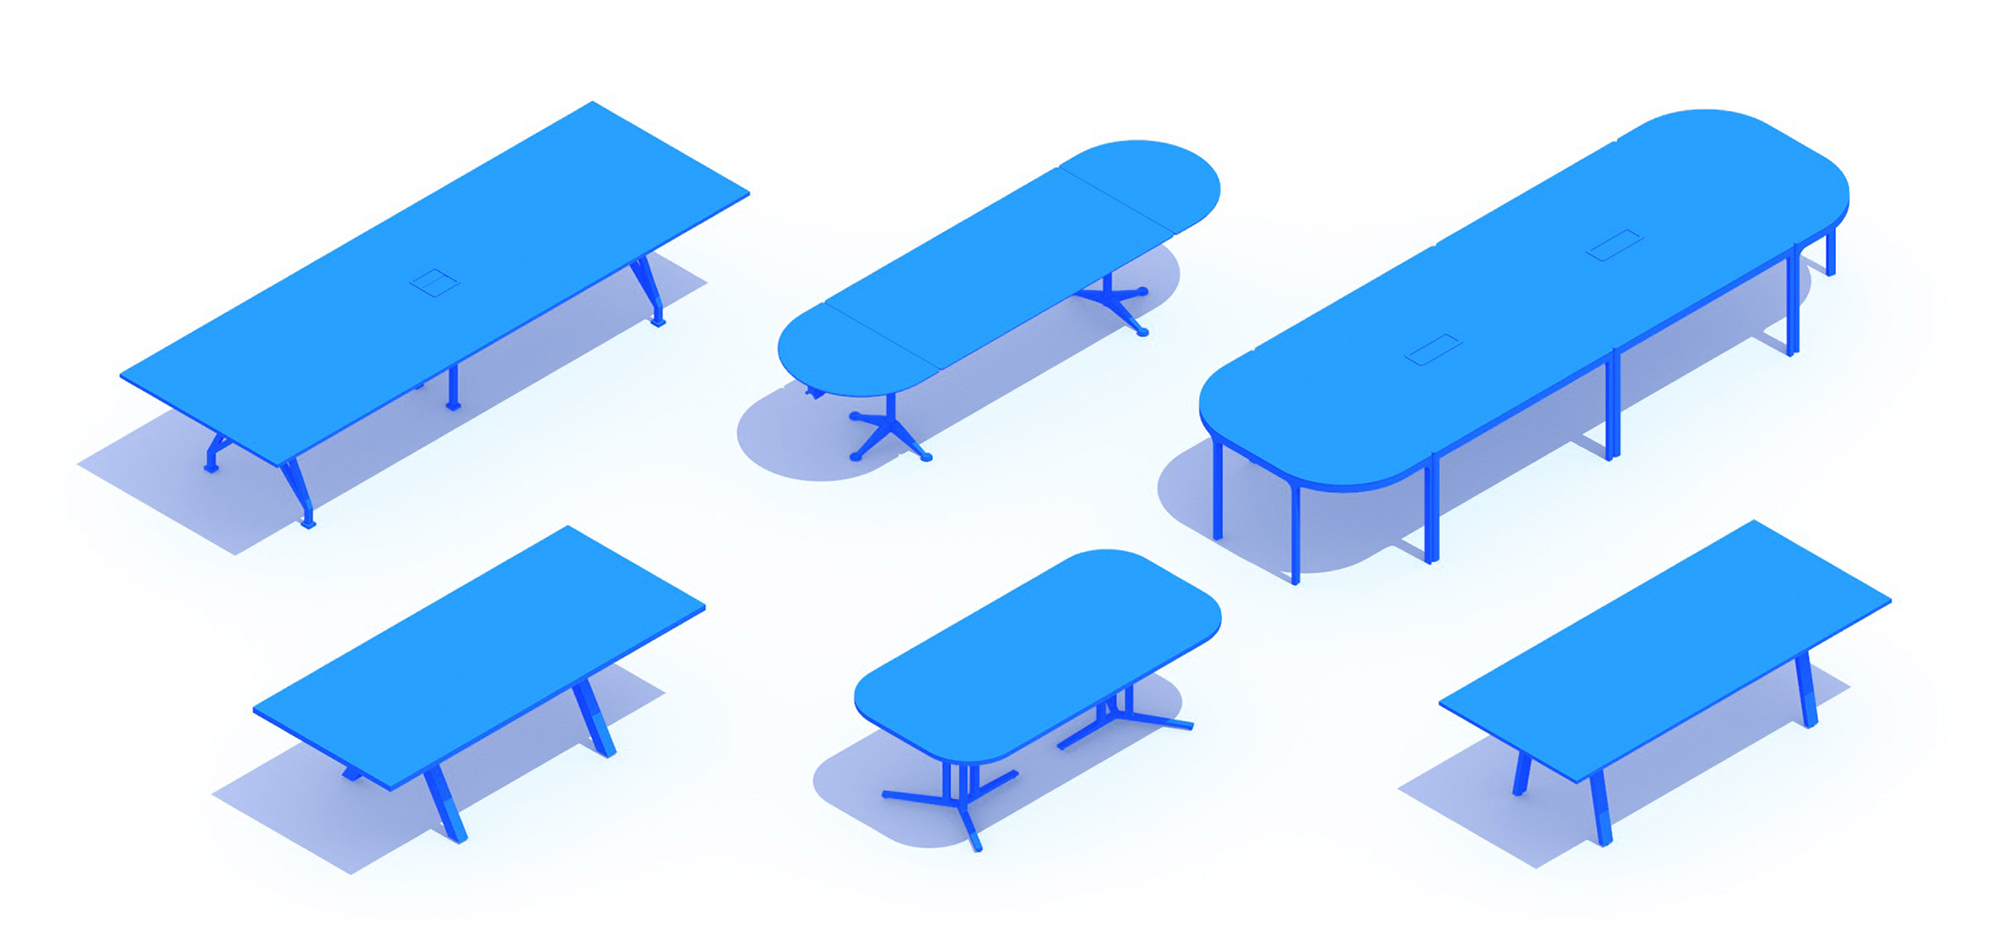 Collection of 3D Conference Tables showing a diversity of sizes, styles, and types